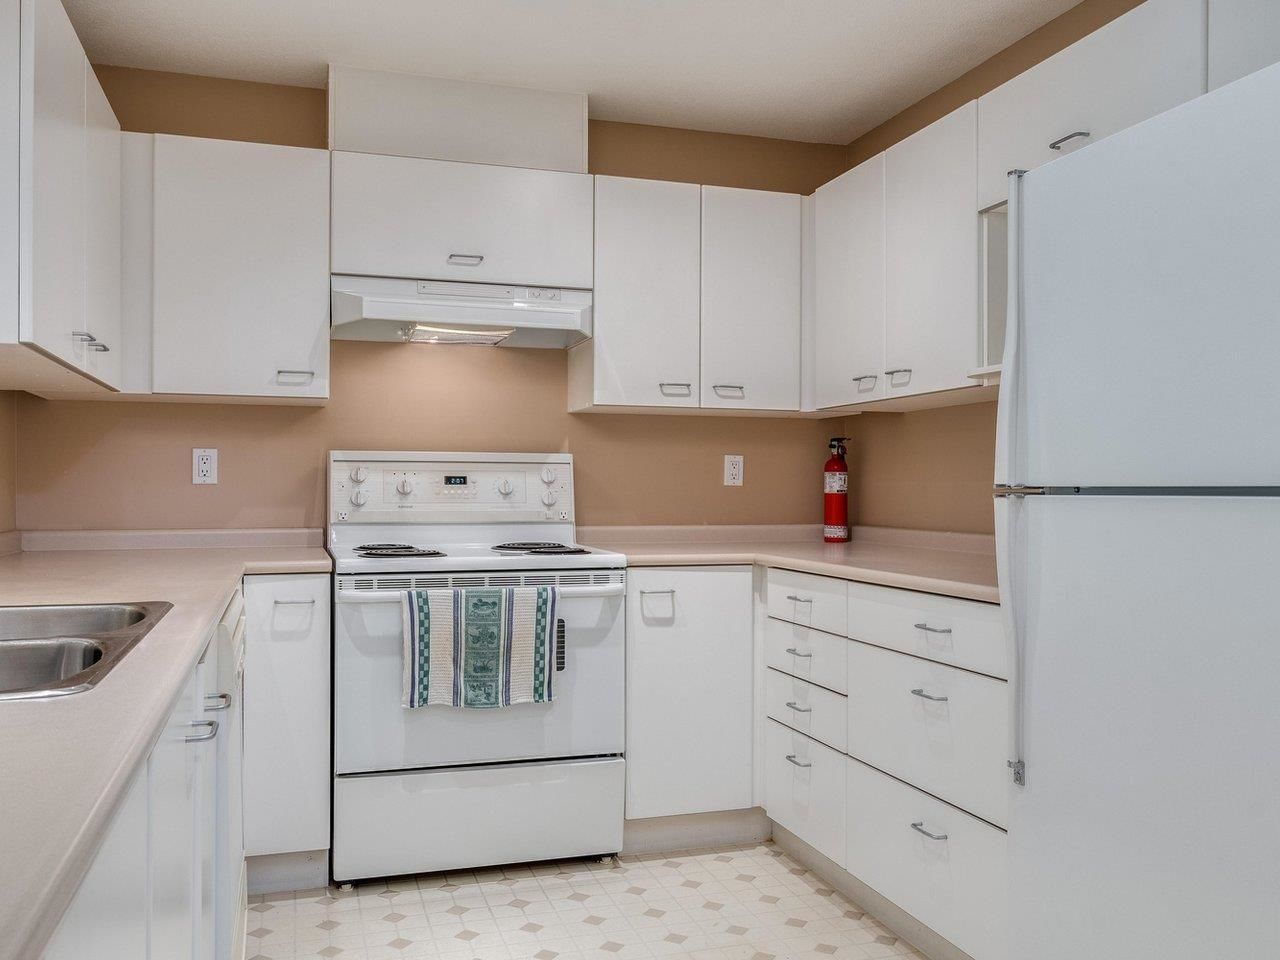 """Photo 15: Photos: 320 1252 TOWN CENTRE Boulevard in Coquitlam: Canyon Springs Condo for sale in """"The Kennedy"""" : MLS®# R2595291"""